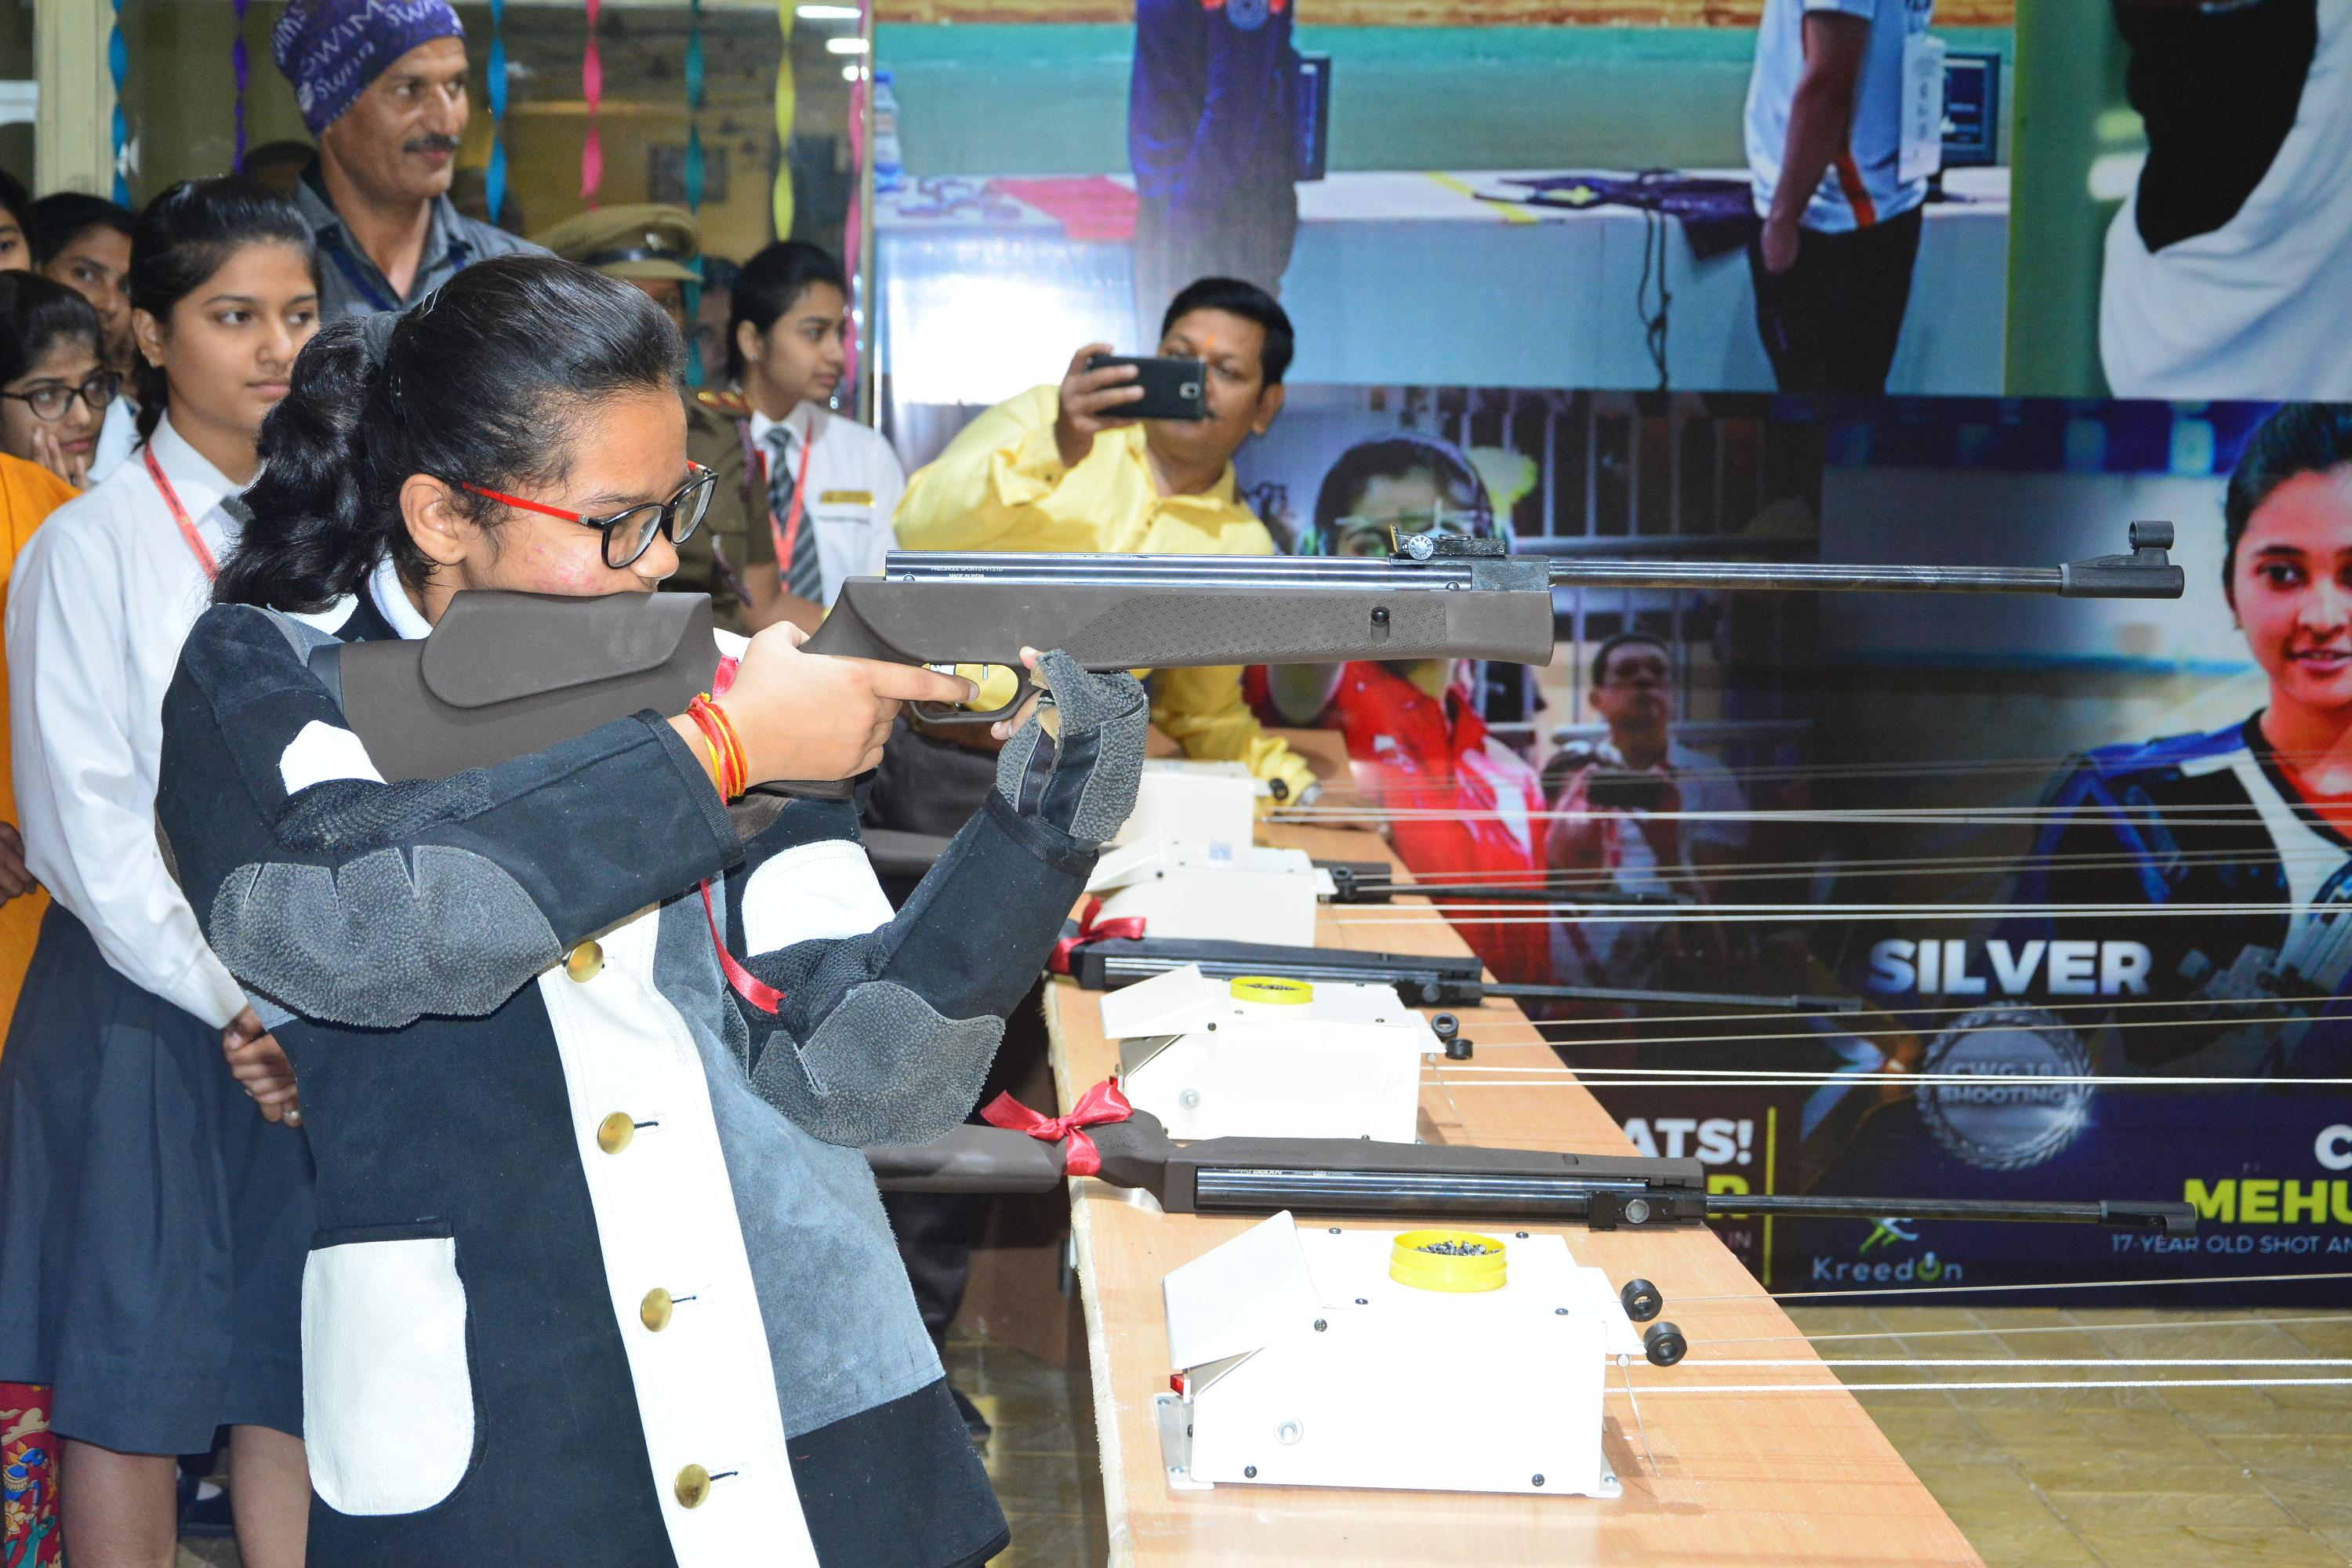 Shooting Range for Girls